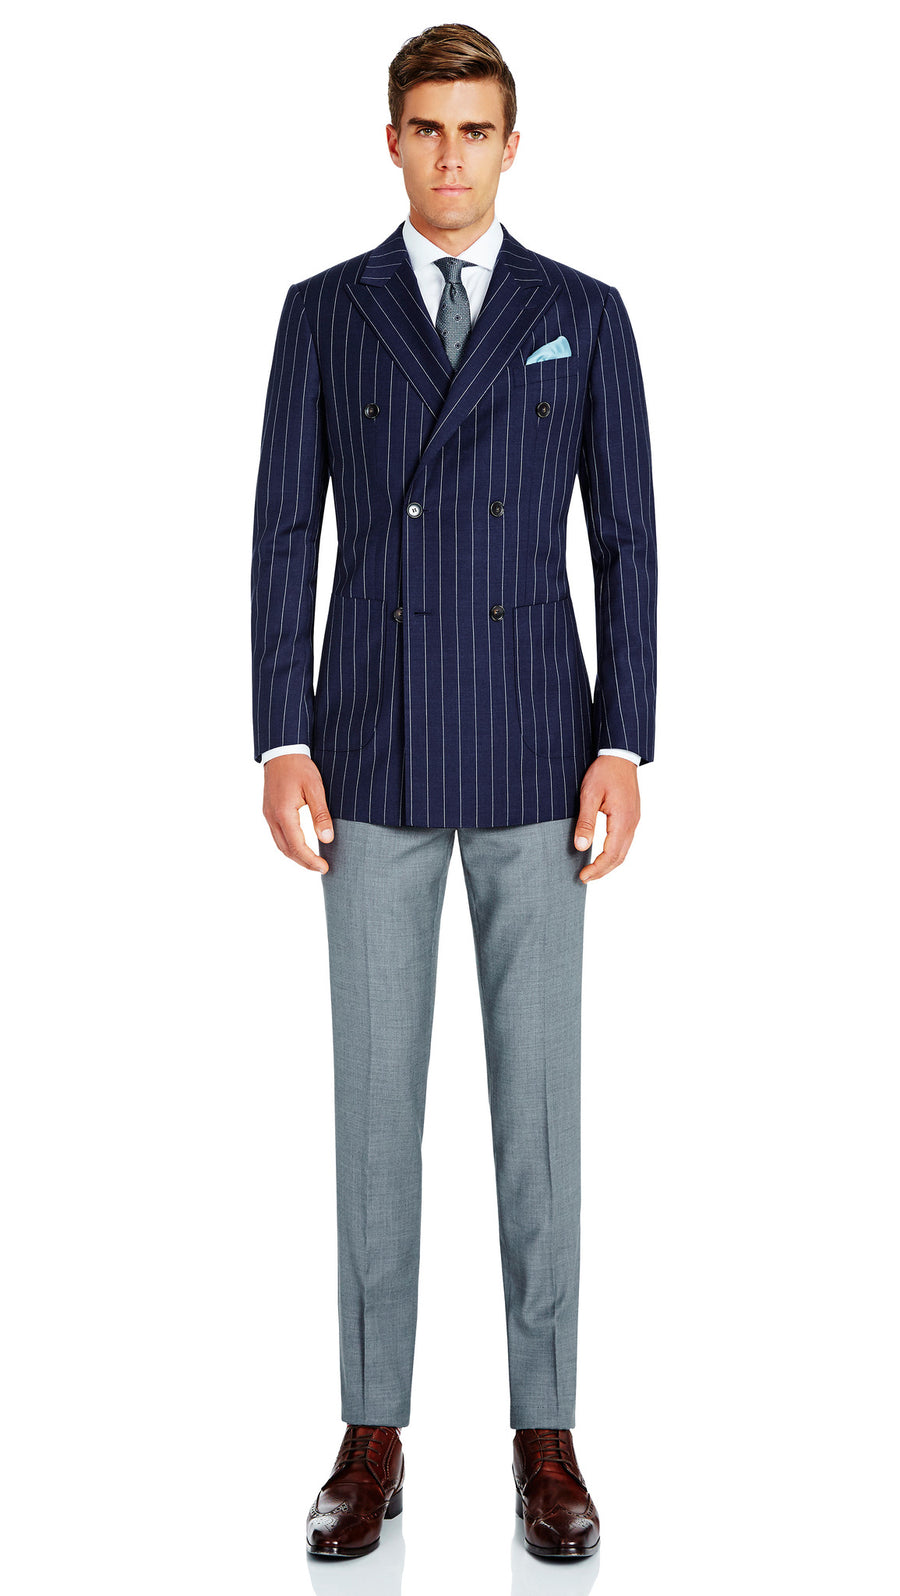 """The Bank"" Jacket by Sew253 - Ron Bennett Menswear  - 1"